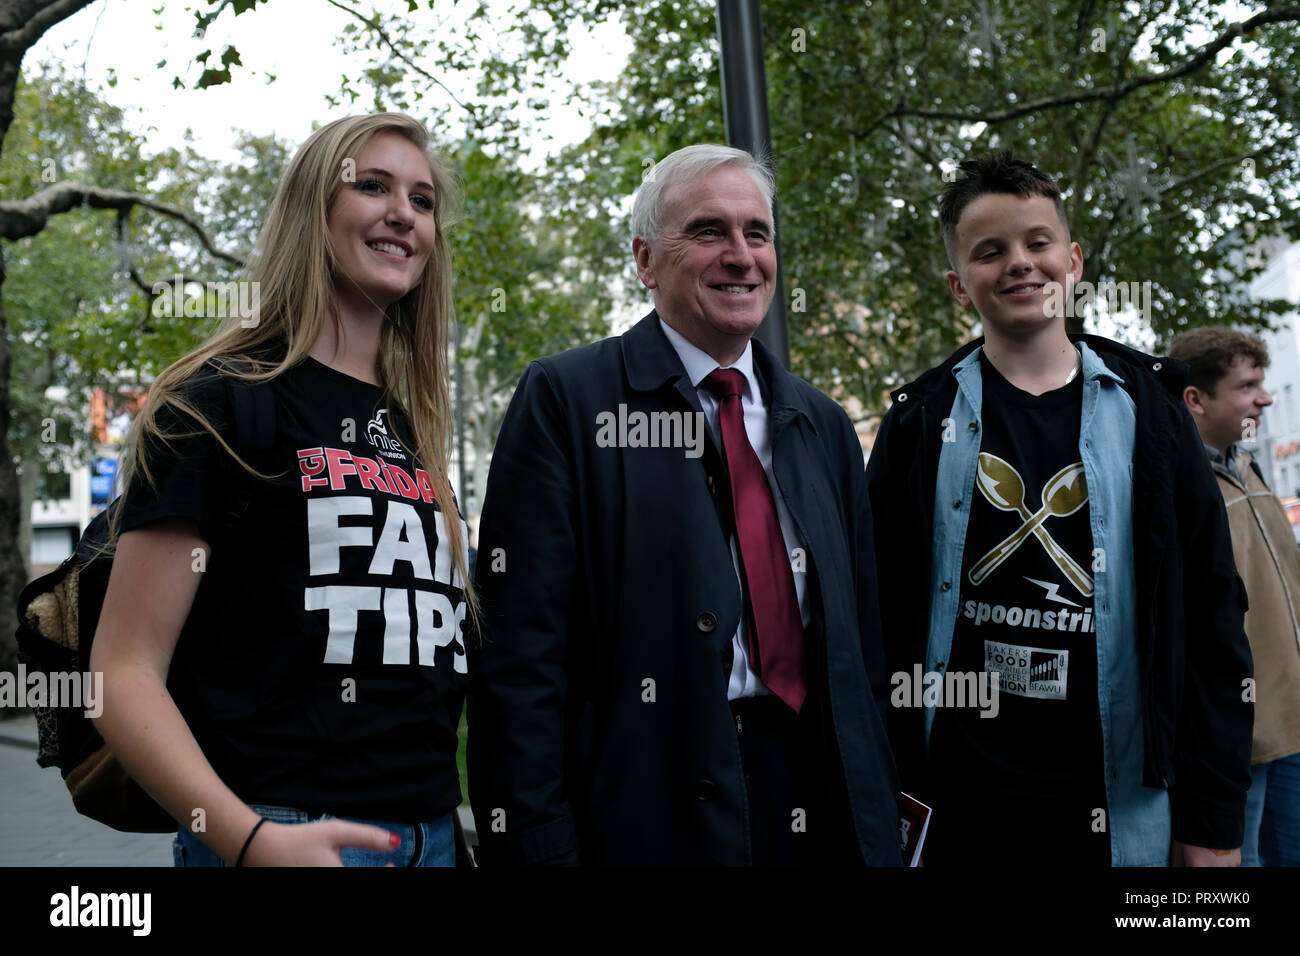 John McDonnell (centre), Labor Member of Parliament seen during the demonstration. Wetherspoons, TGI Fridays, and McDonald's workers rally together in London to demand better working conditions and a fair pay in the hospitality industry. - Stock Image